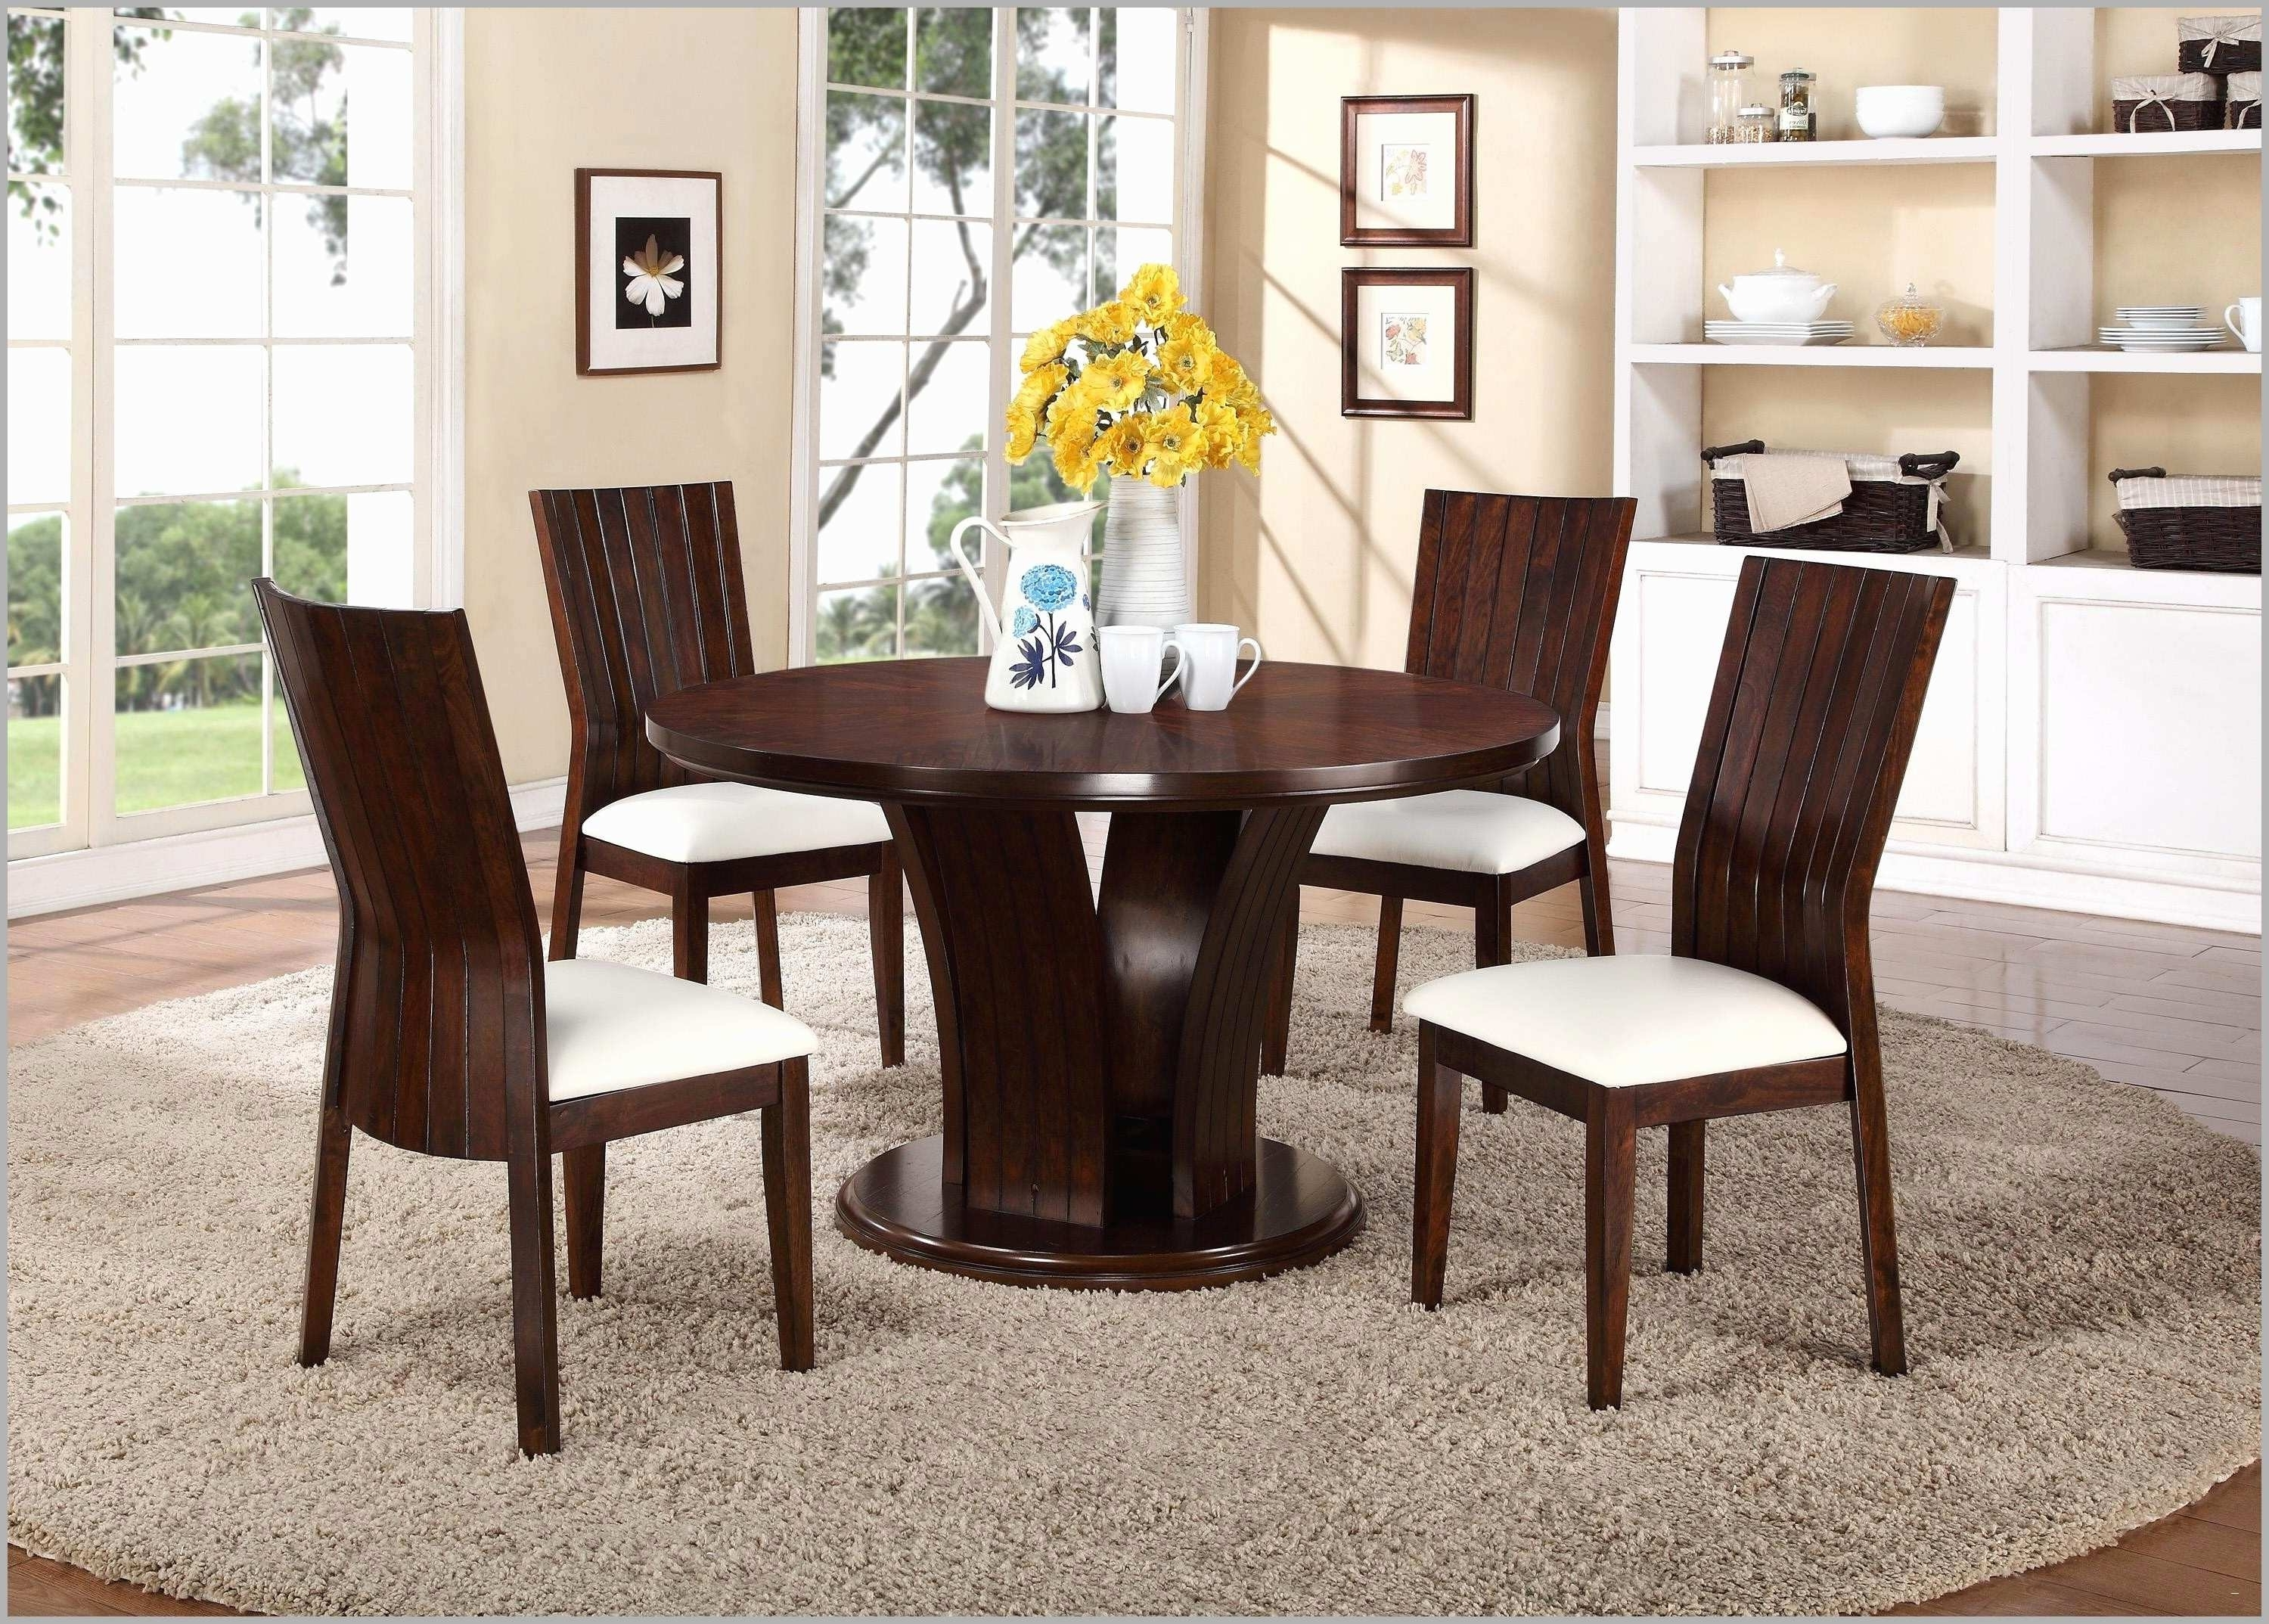 10 Seater Dining Tables And Chairs Regarding Well Known Top 24 Beautiful 10 Seater Dining Table And Chairs – Welovedandelion (View 4 of 25)